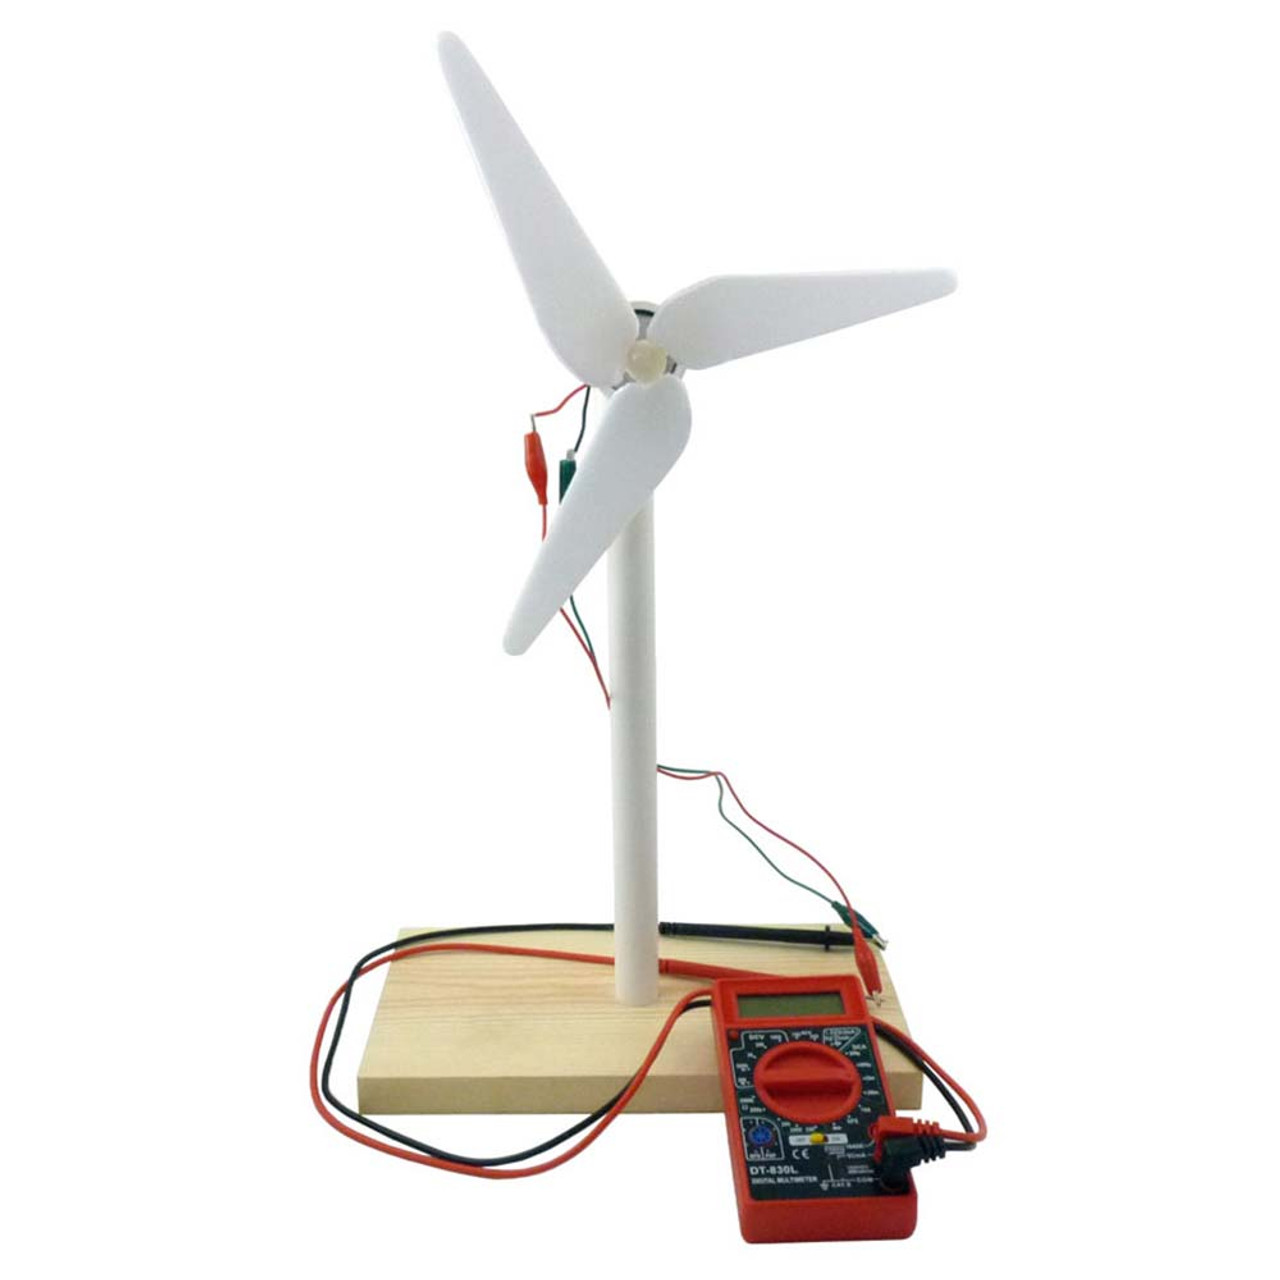 Wind turbine kit for students home science tools item kt winturb wind turbine science kit solutioingenieria